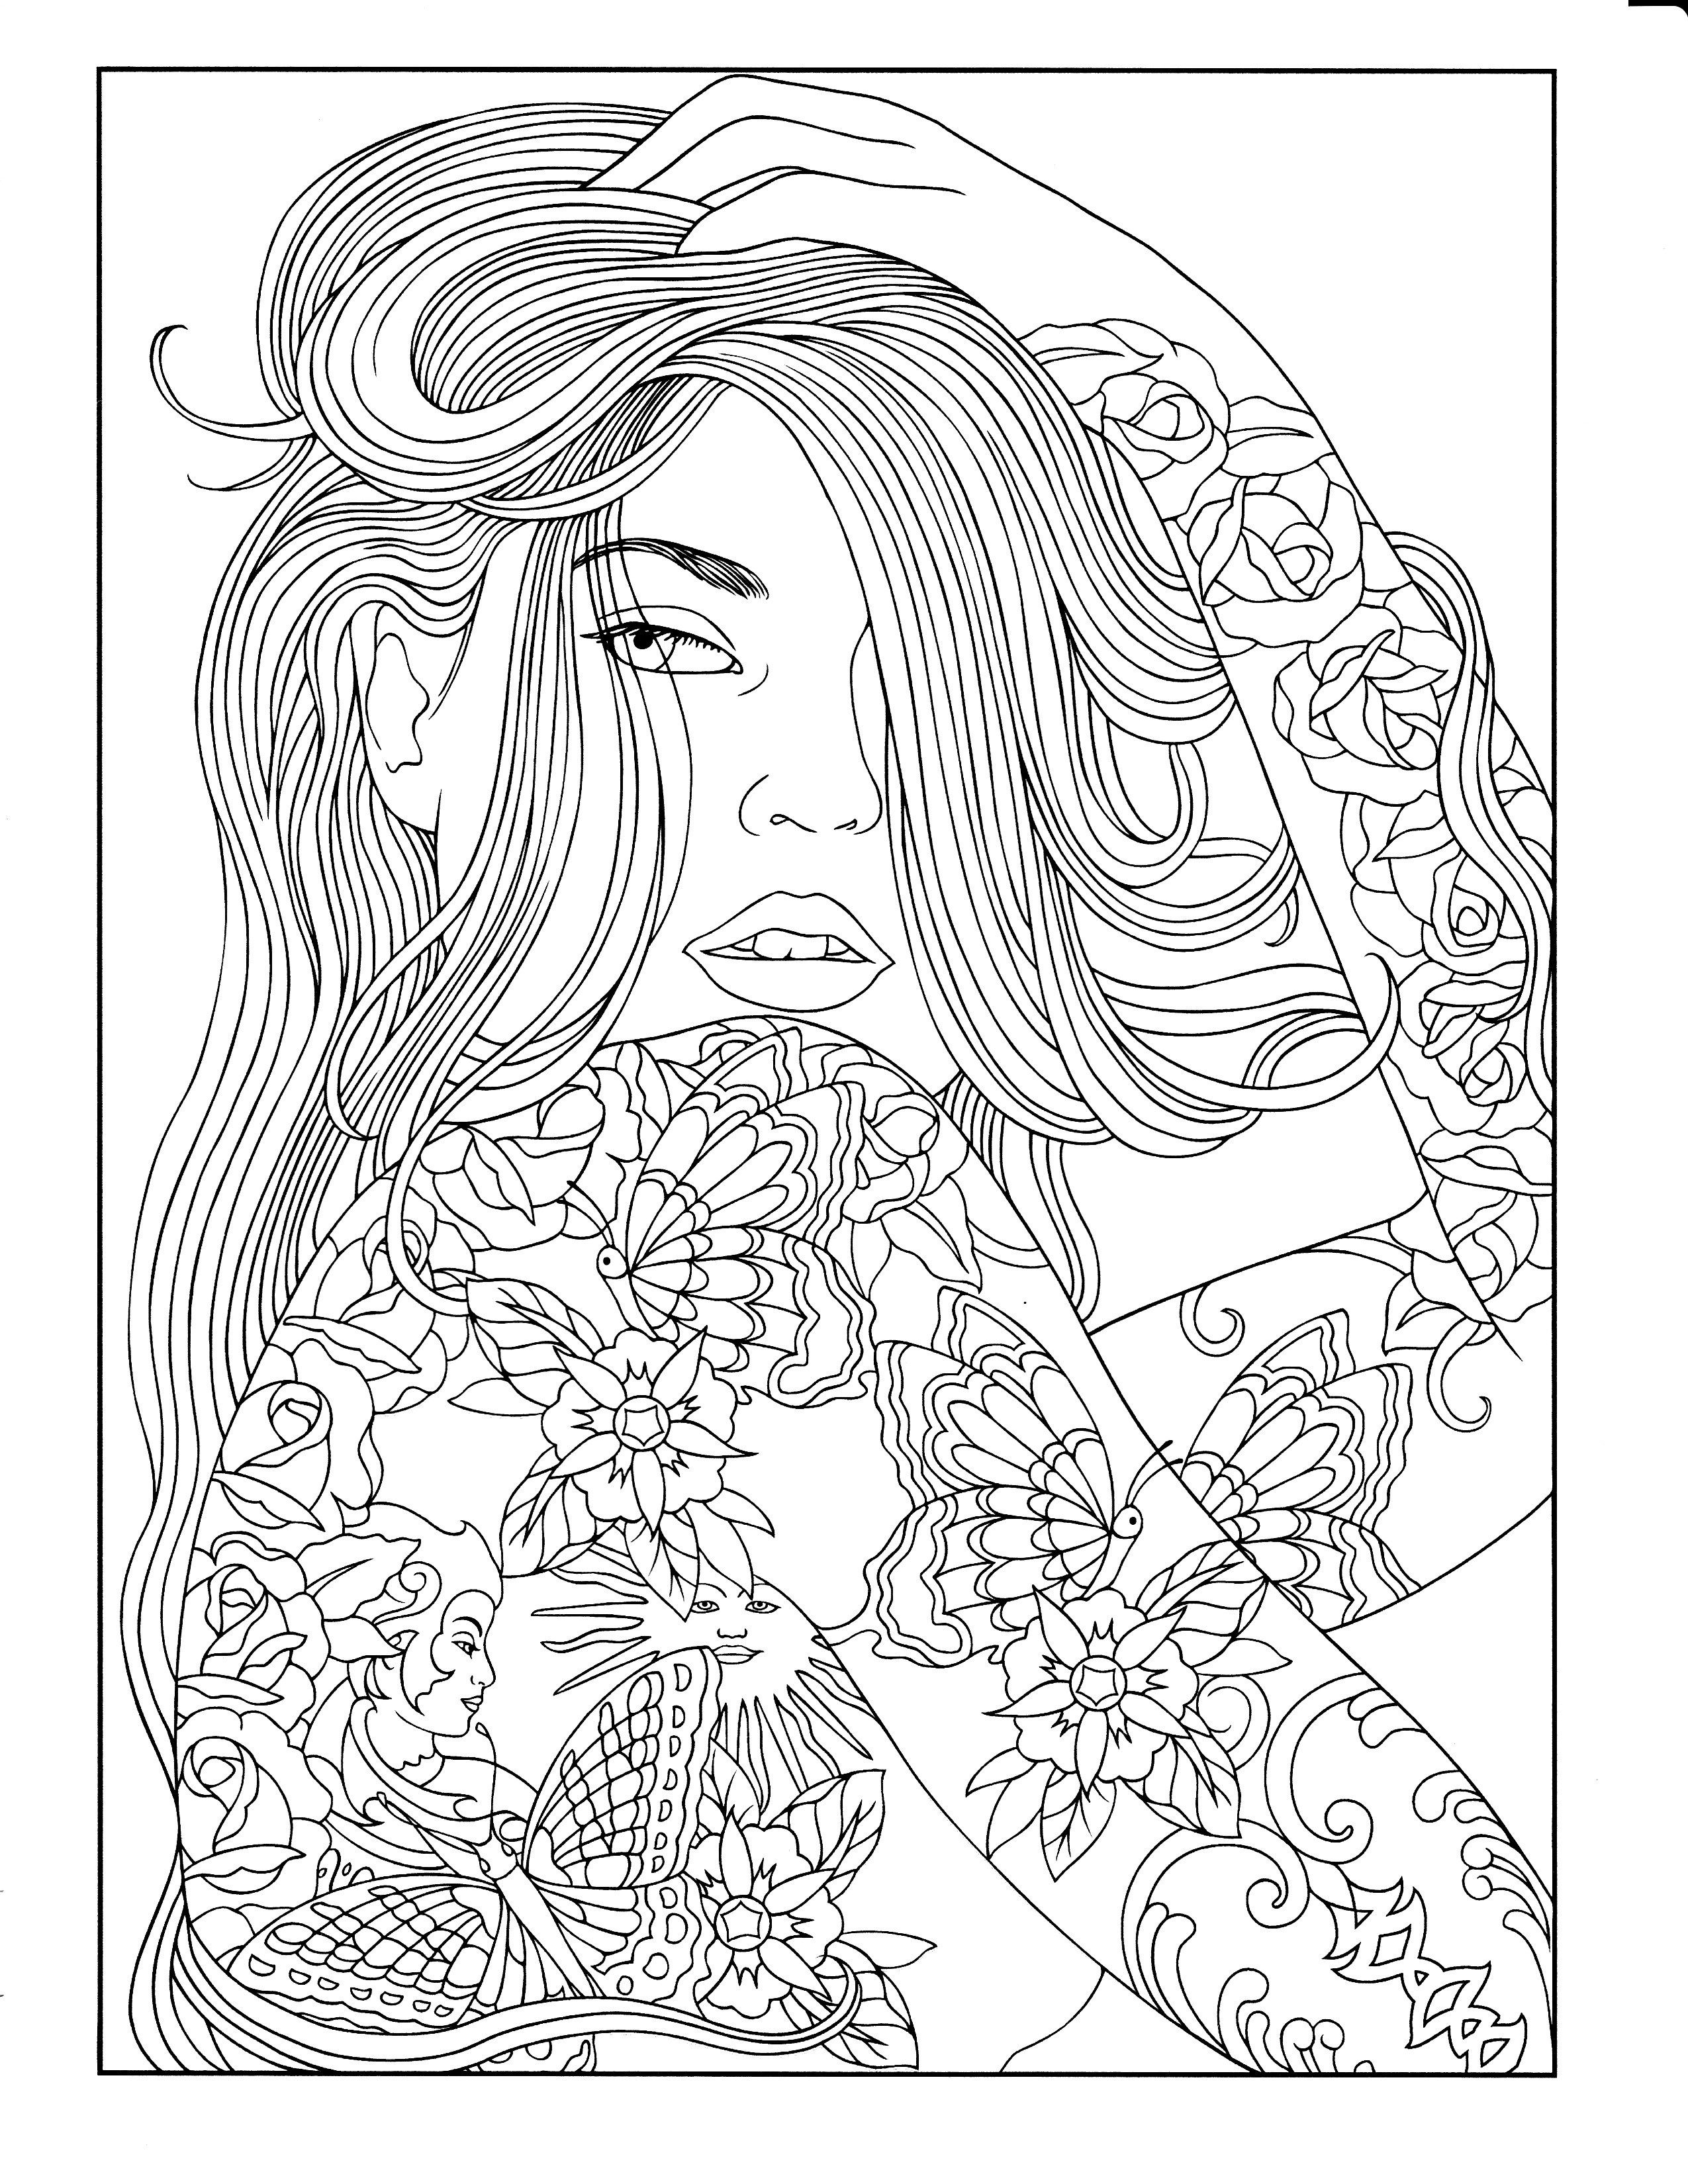 Printable Coloring Page People Coloring Pages Tattoo Coloring